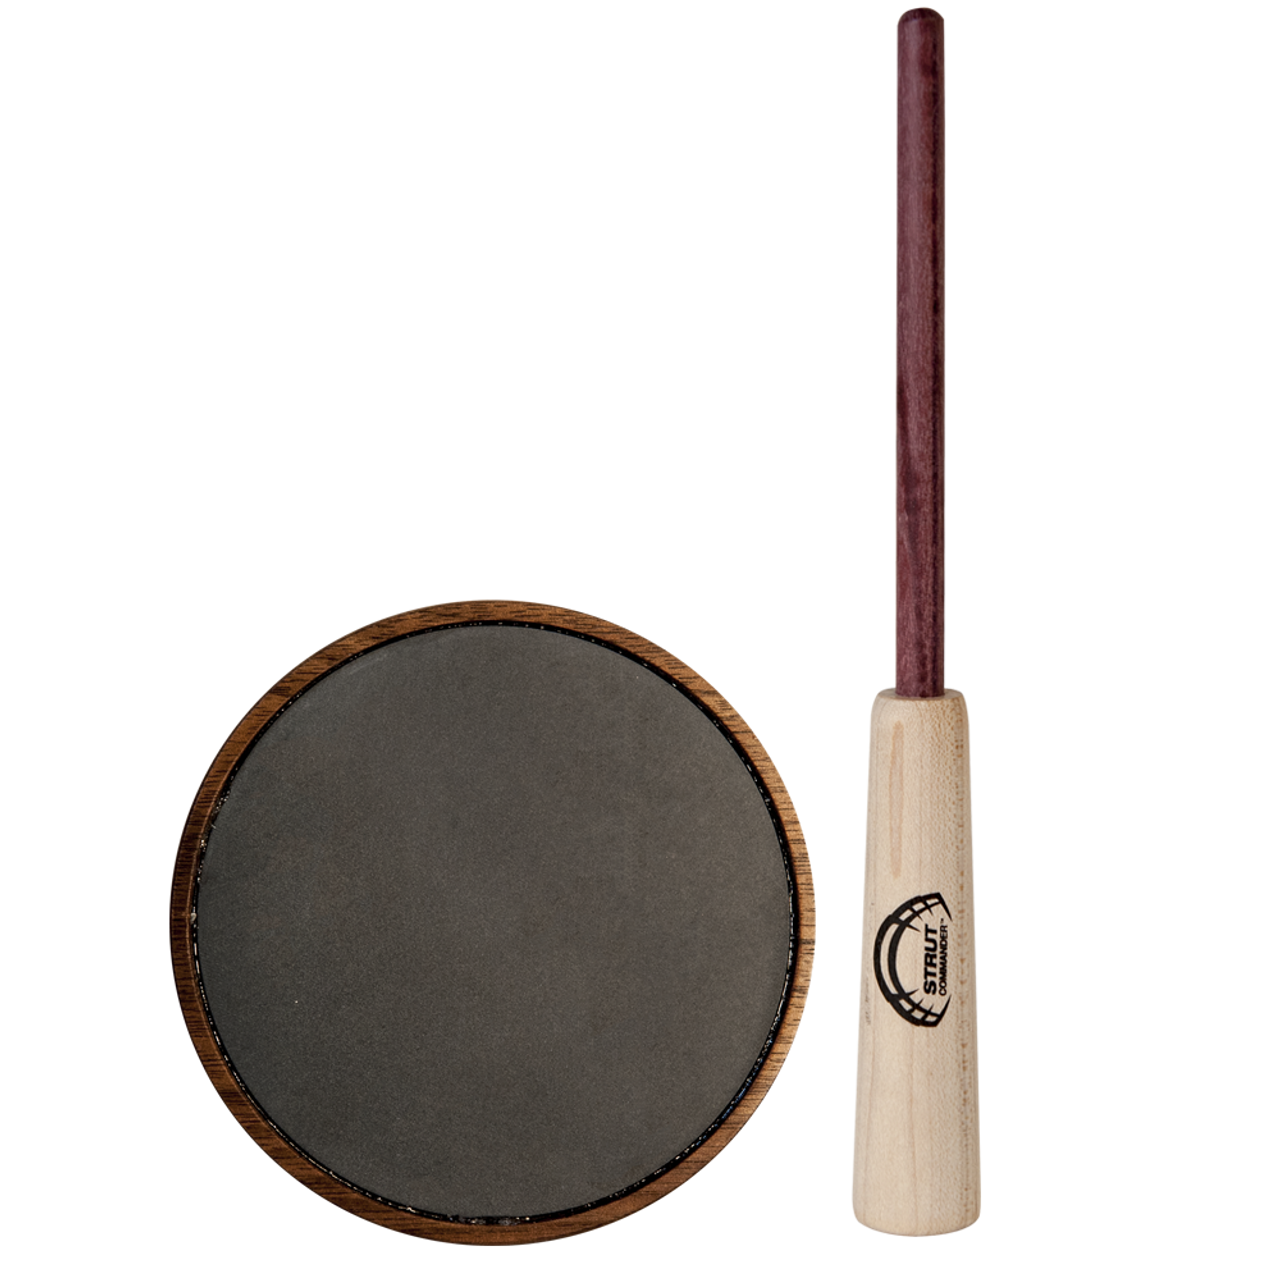 The Ole Scratch Strut Commander Slate pot call features a hand-turned walnut wood pot, a slate surface capable of producing a more mellow, raspy variety of yelps, clucks, cutts, and purrs, and a 2-piece purple heart wood striker.